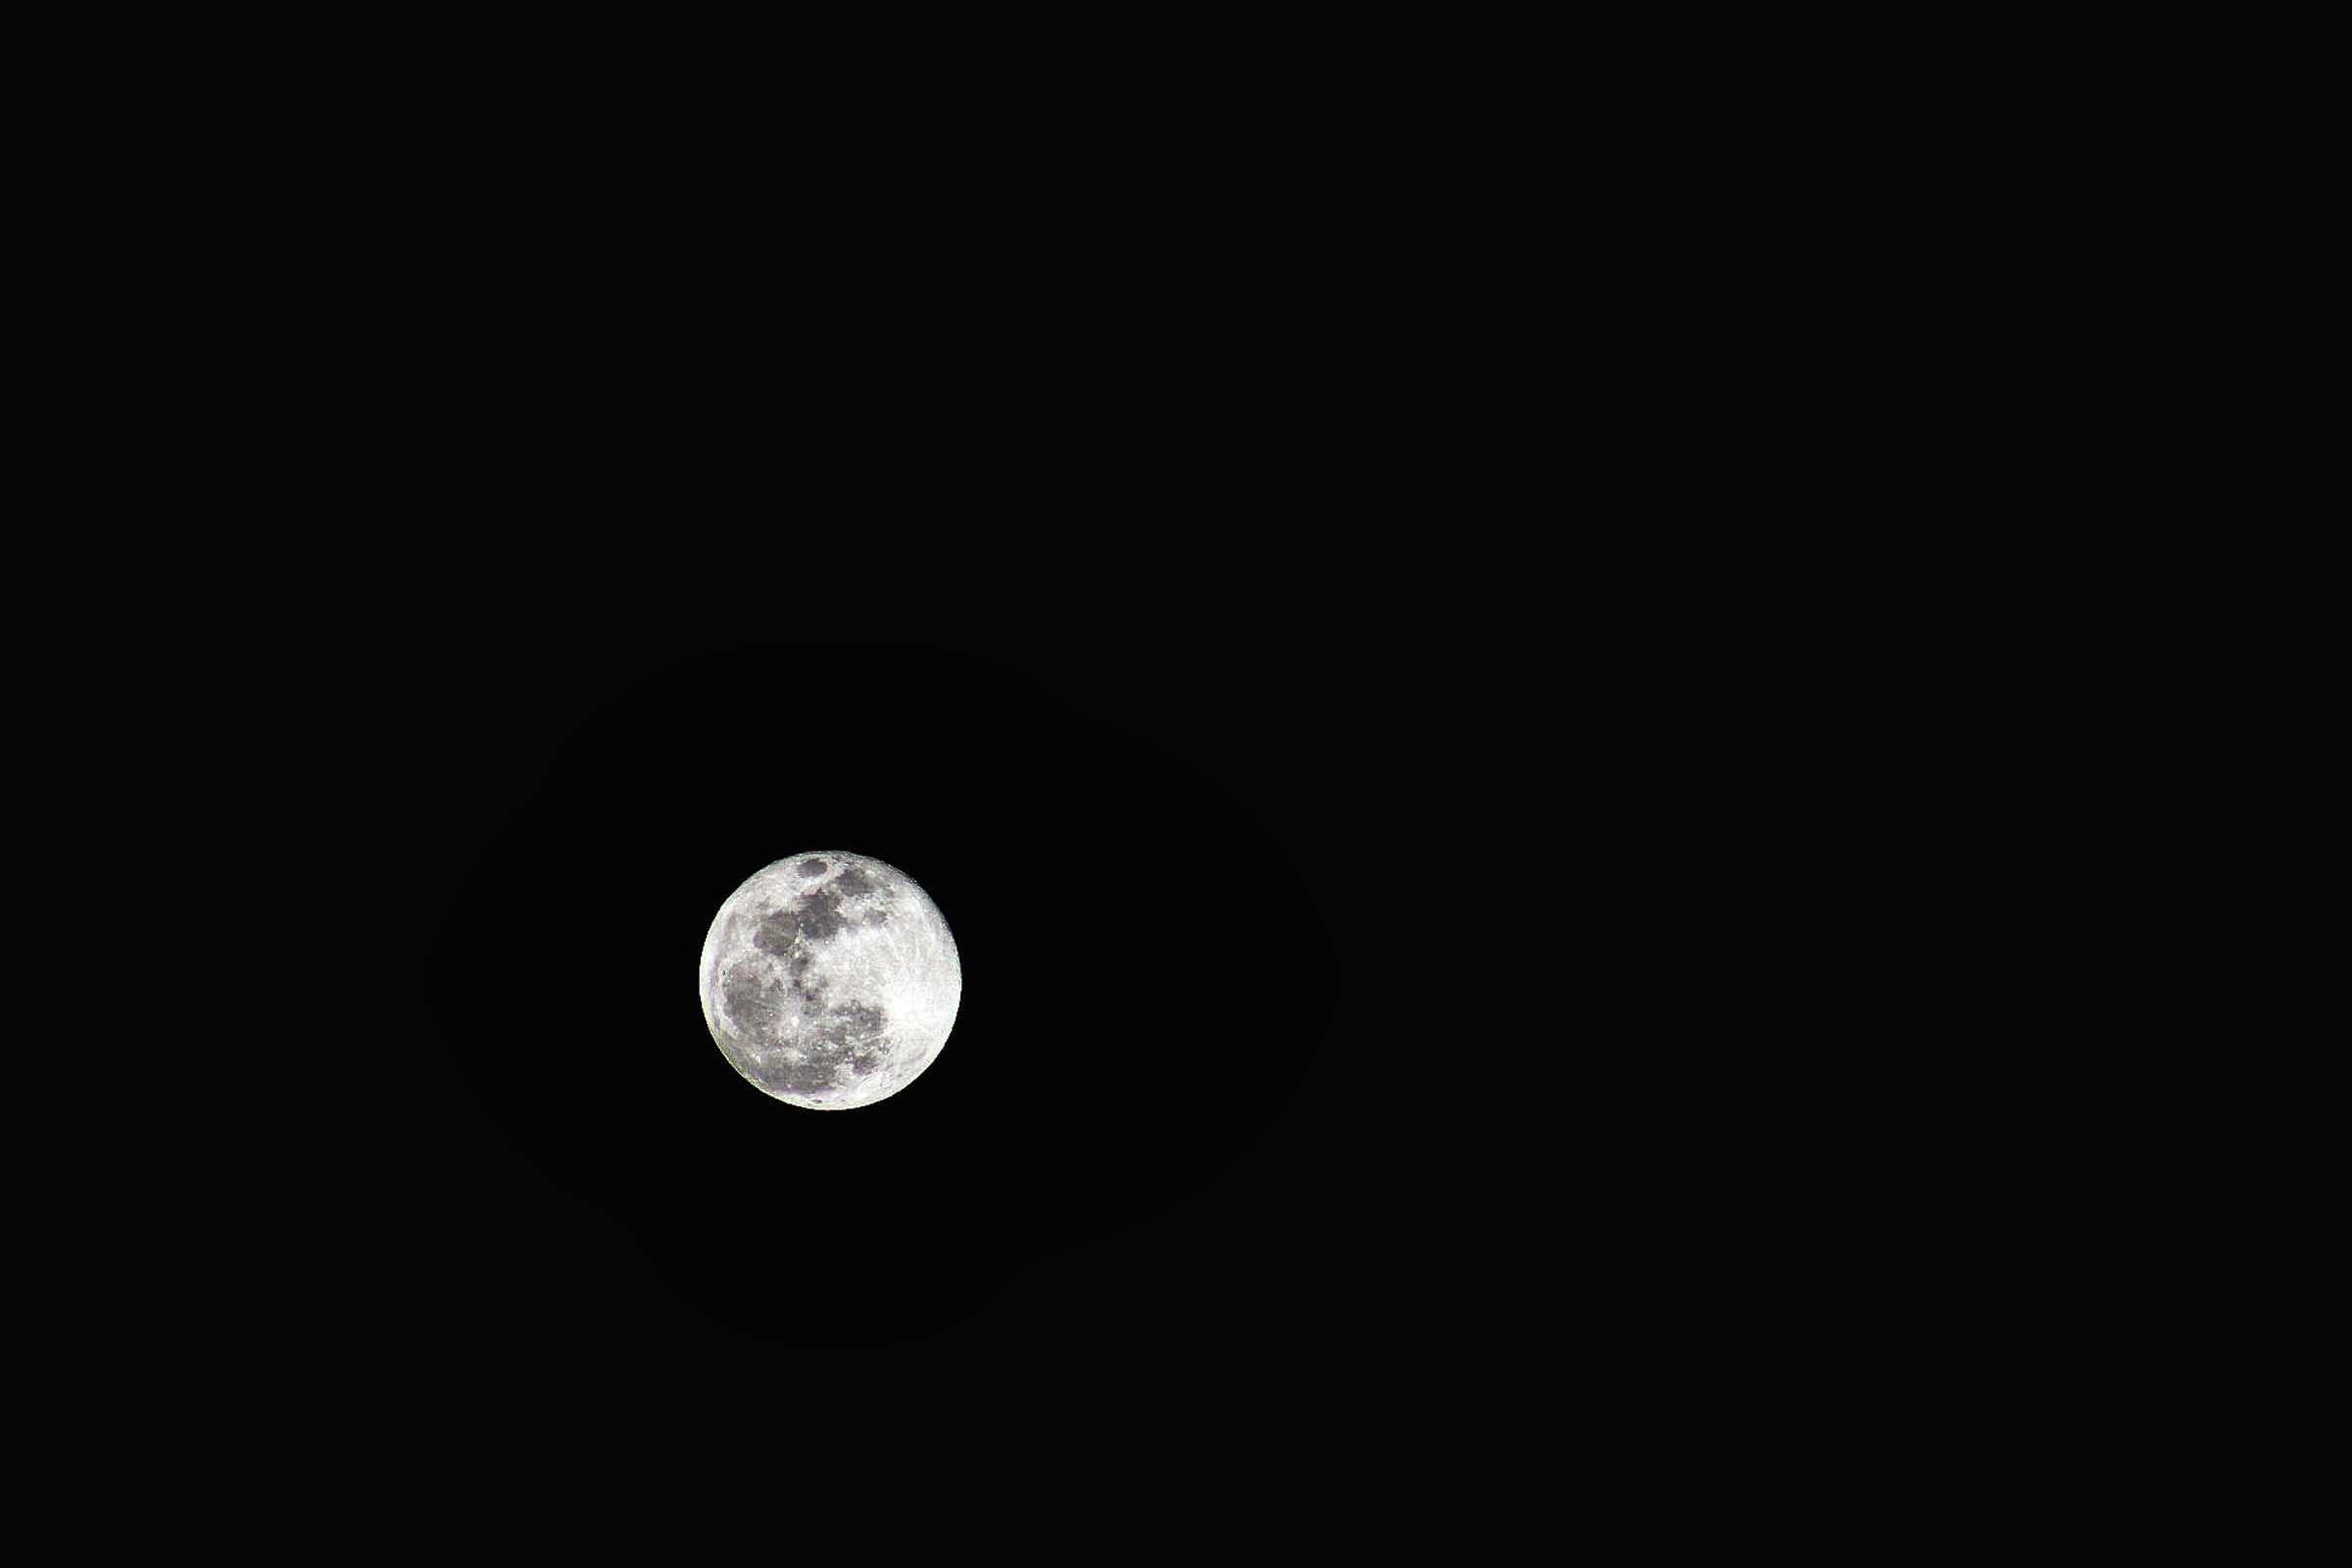 The black and white spots visible on the moon on a dark night sky